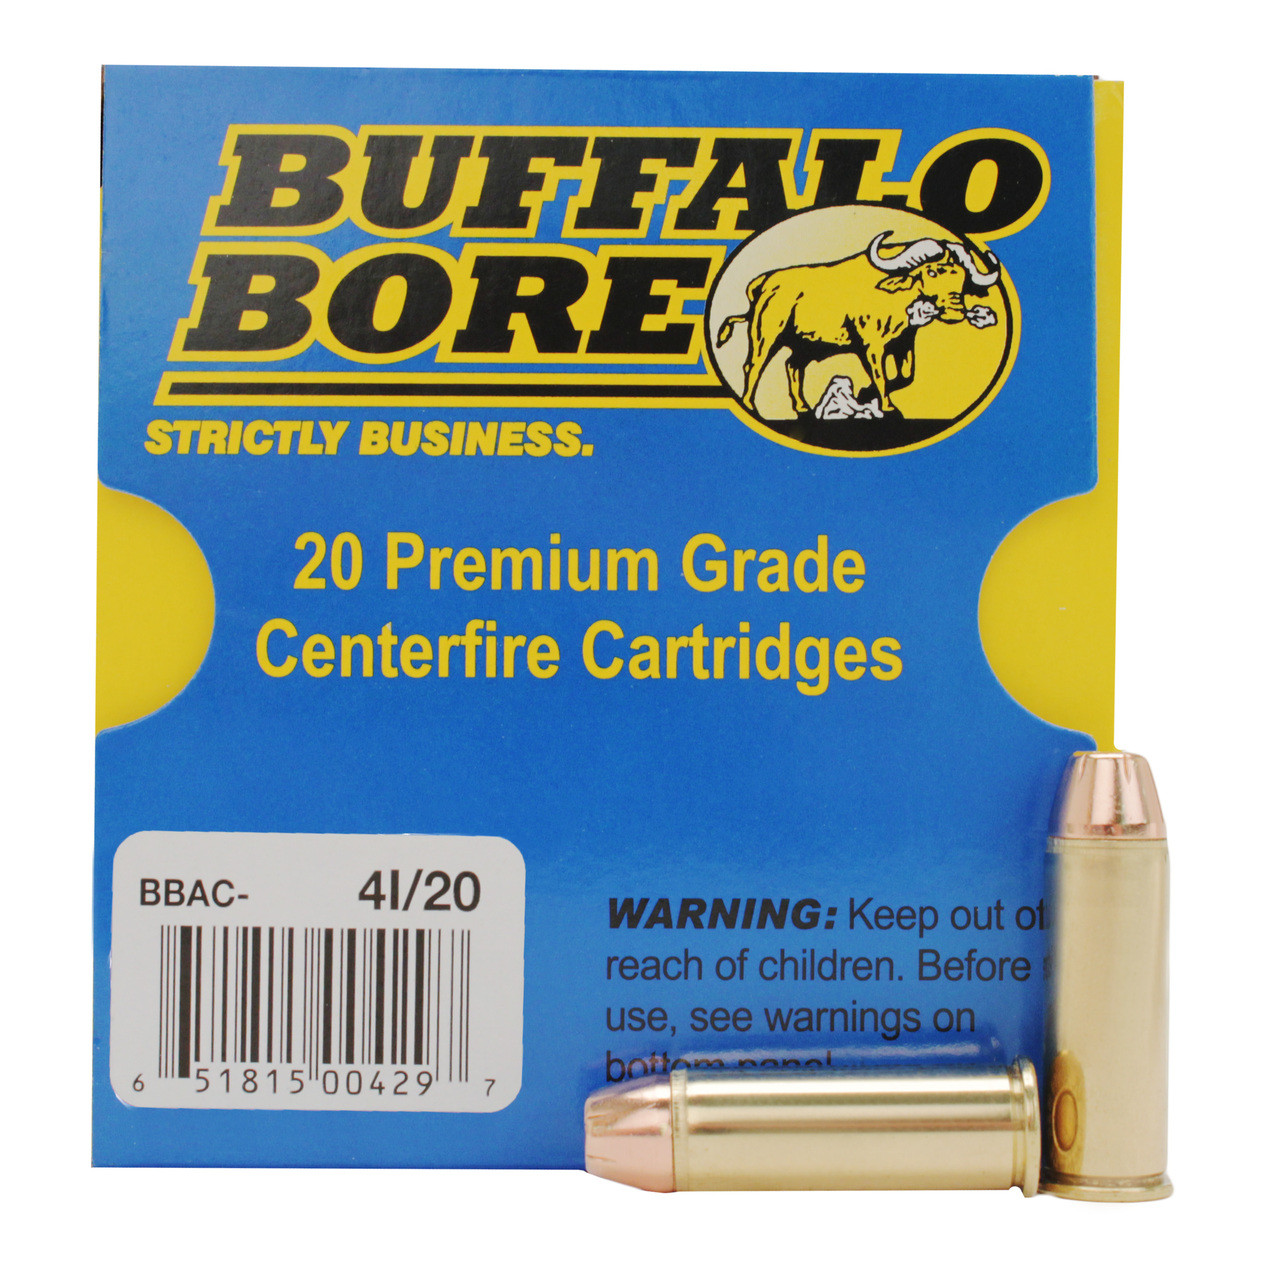 Buffalo Bore Ammunition 44 Remington Magnum 180 Grain Jacketed Hollow Point  Anti-Personnel Box of 20, UPC :651815004297